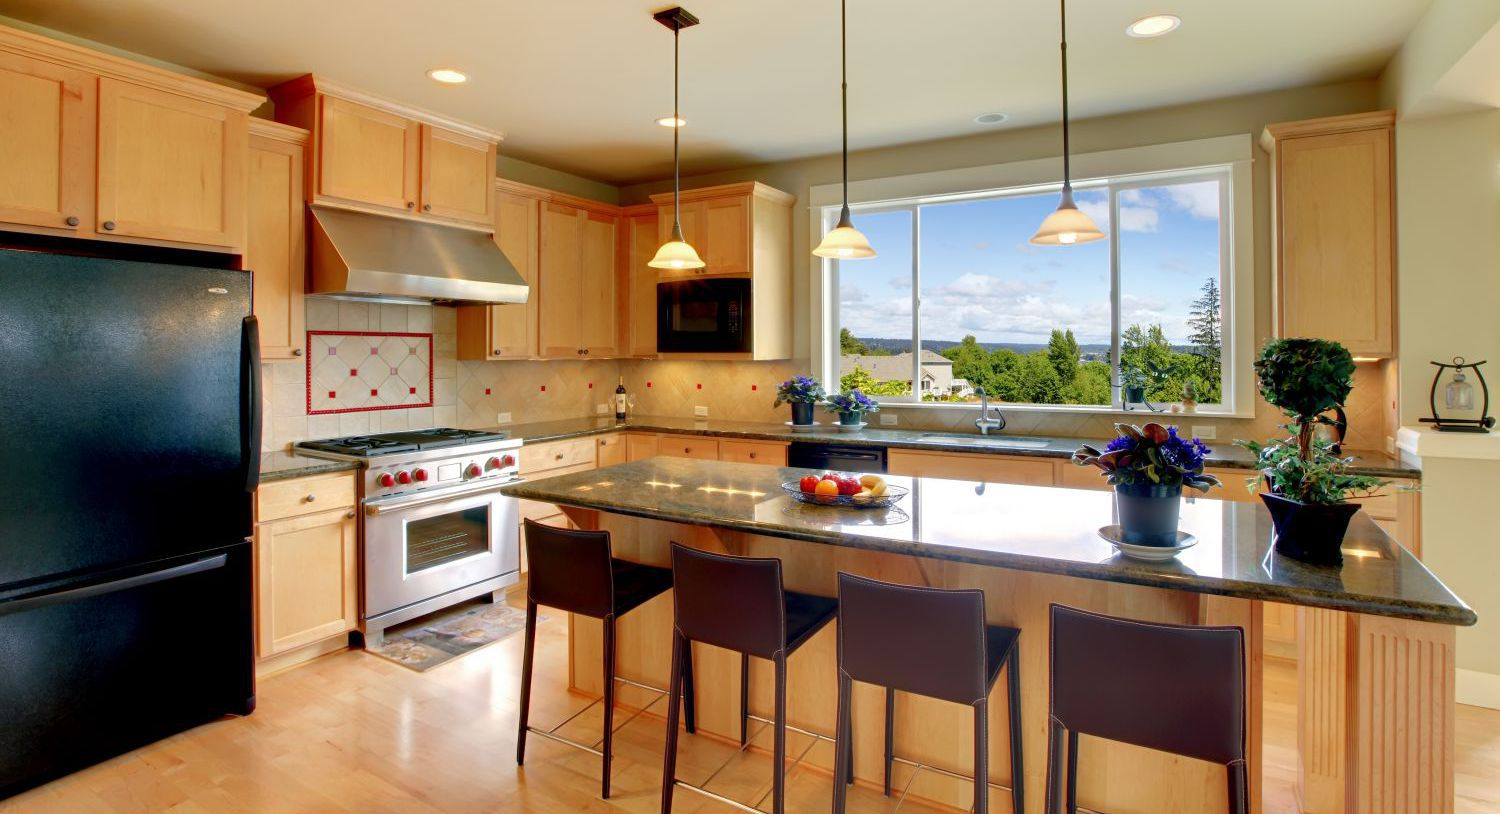 Clean interior by housekeeping services in Hilo, HI